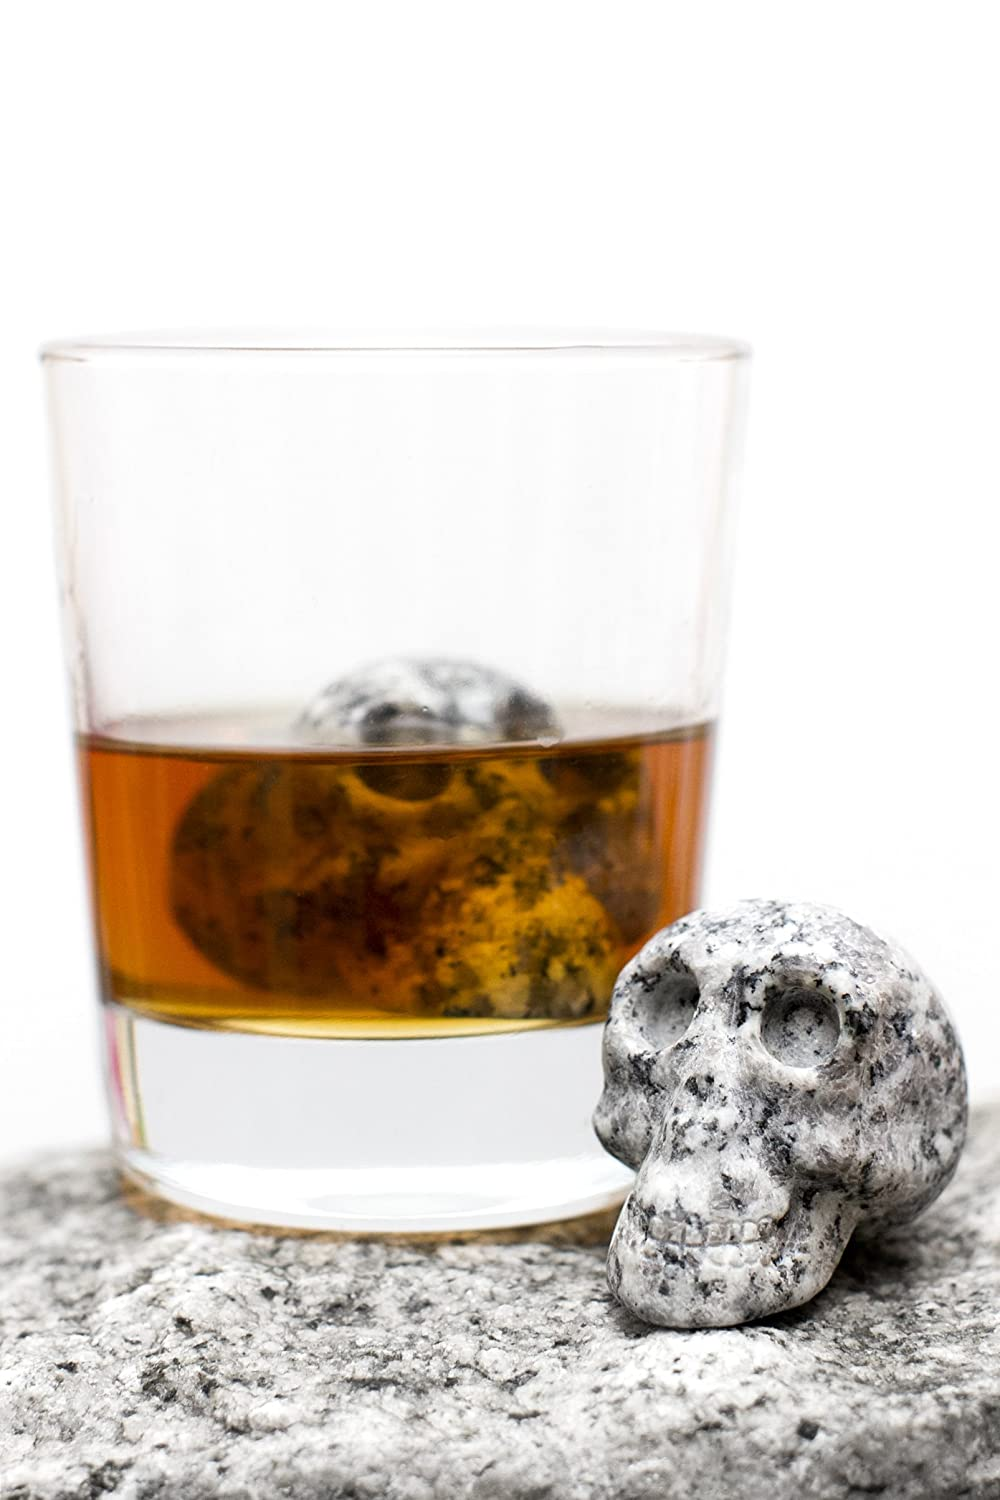 Whiskey Bones Hand-Carved Set of 2 Beverage Chilling Granite Skull Whiskey Stones (Chilling Rocks) - in Gift Box